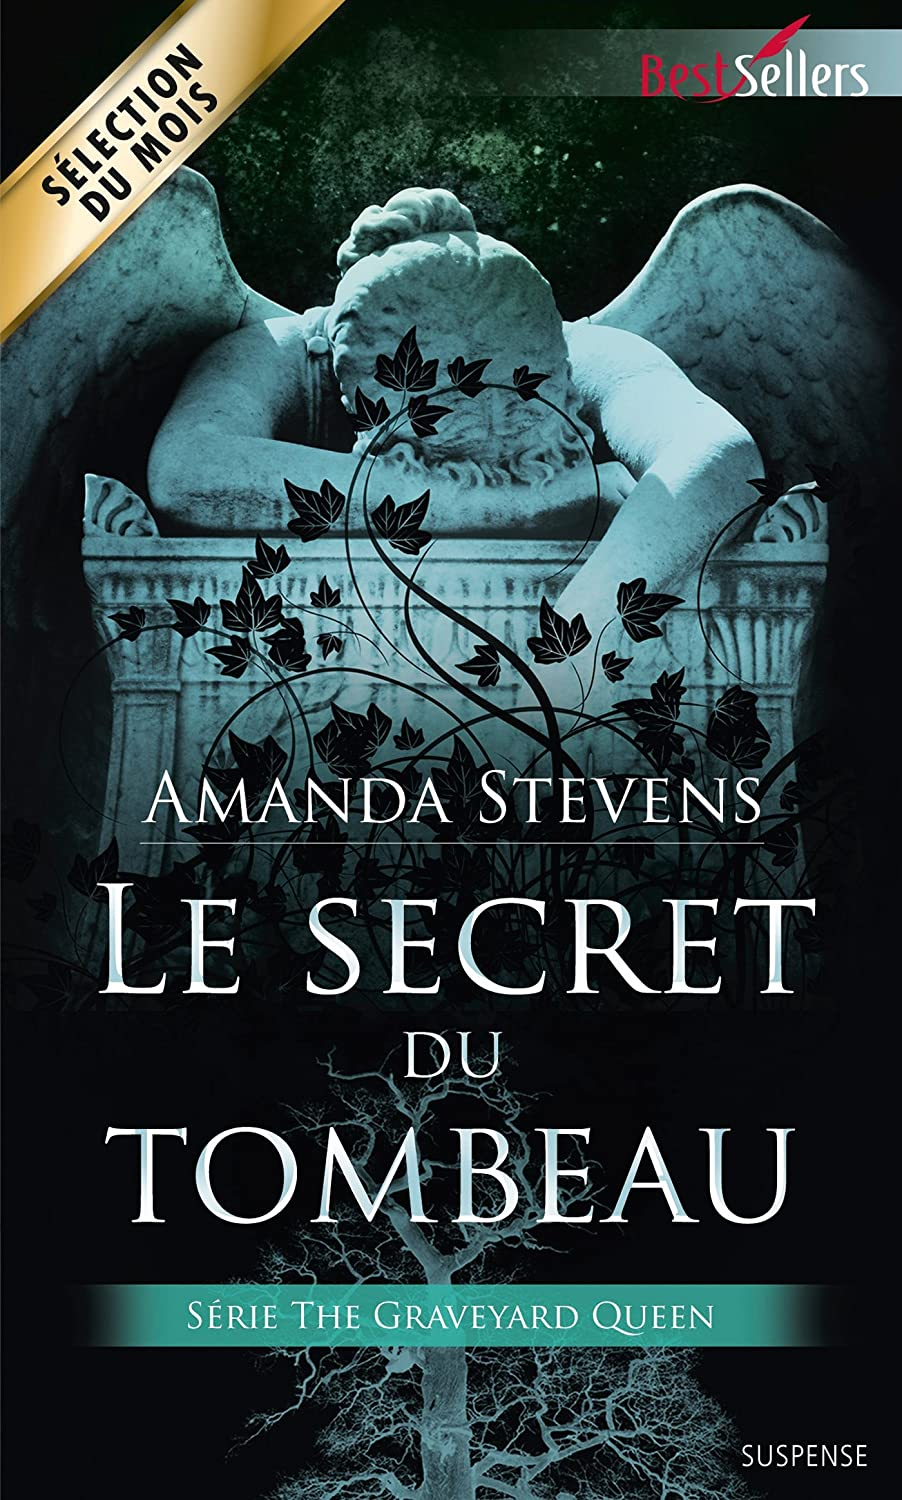 The Graveyard Queen, Tome 1 : Le secret du tombeau 91ChaMONeHL._SL1500_